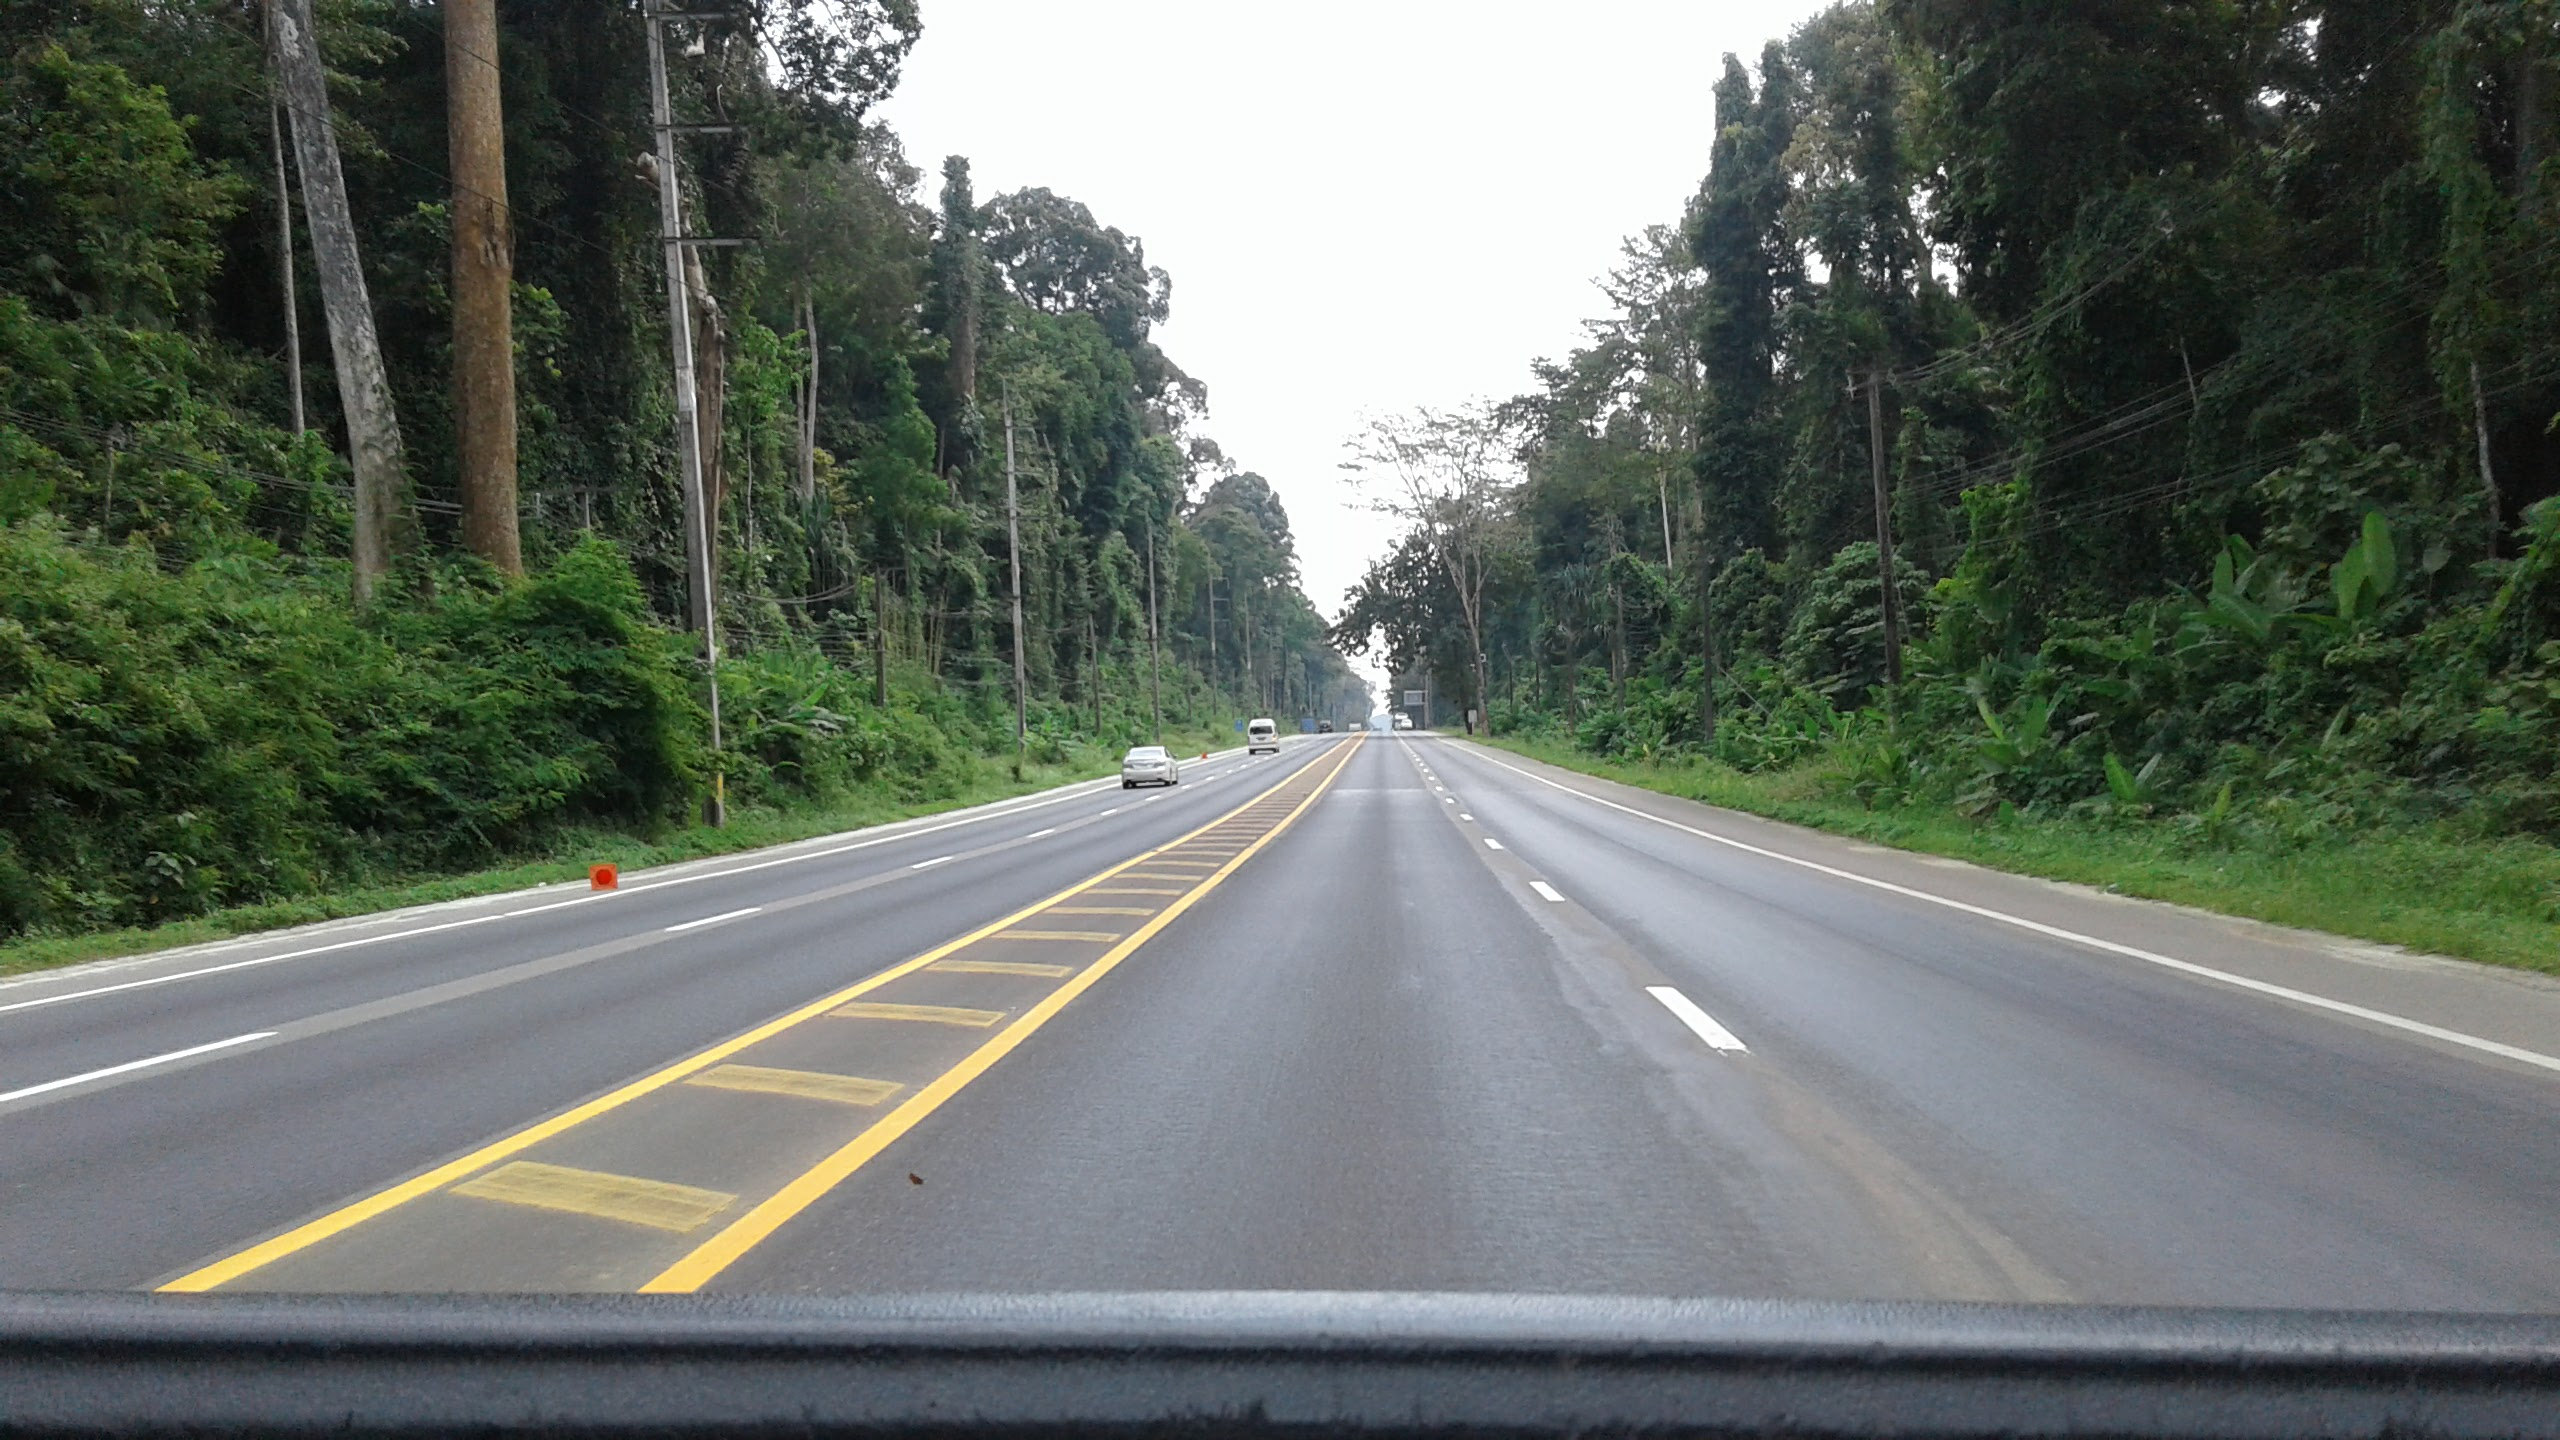 Thai roads are pretty damn decent.